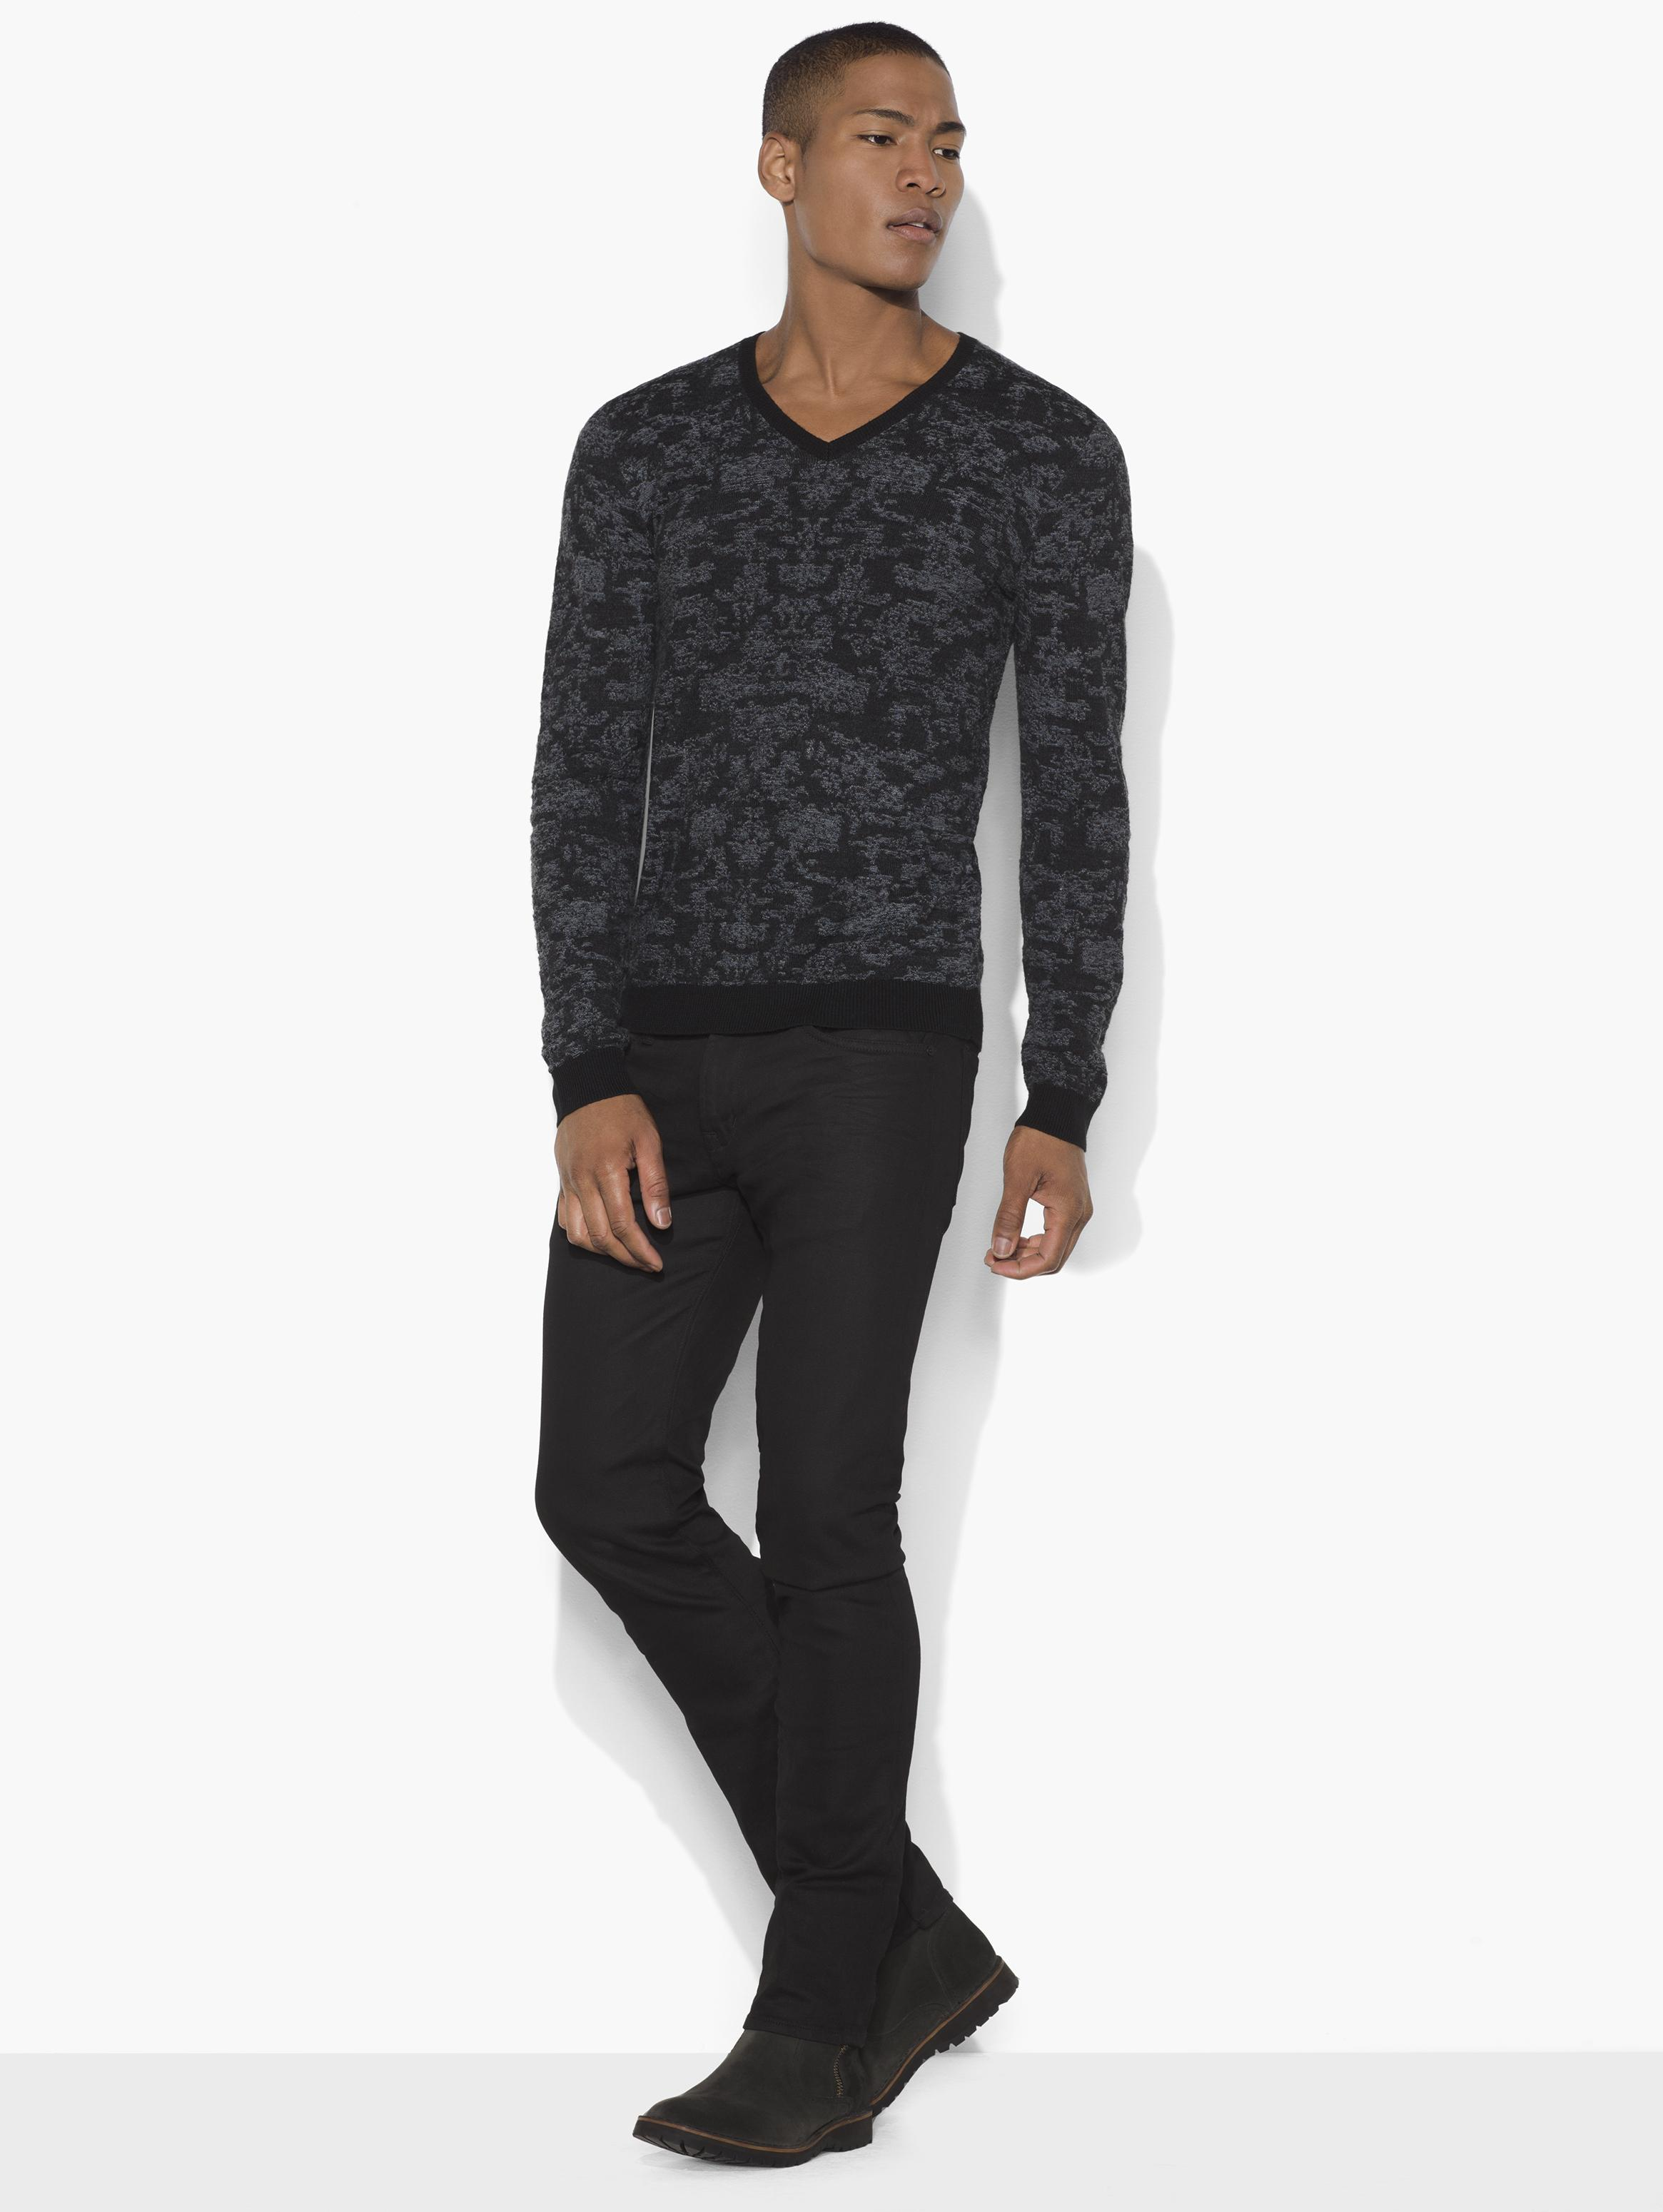 Pixelated V-Neck Sweater